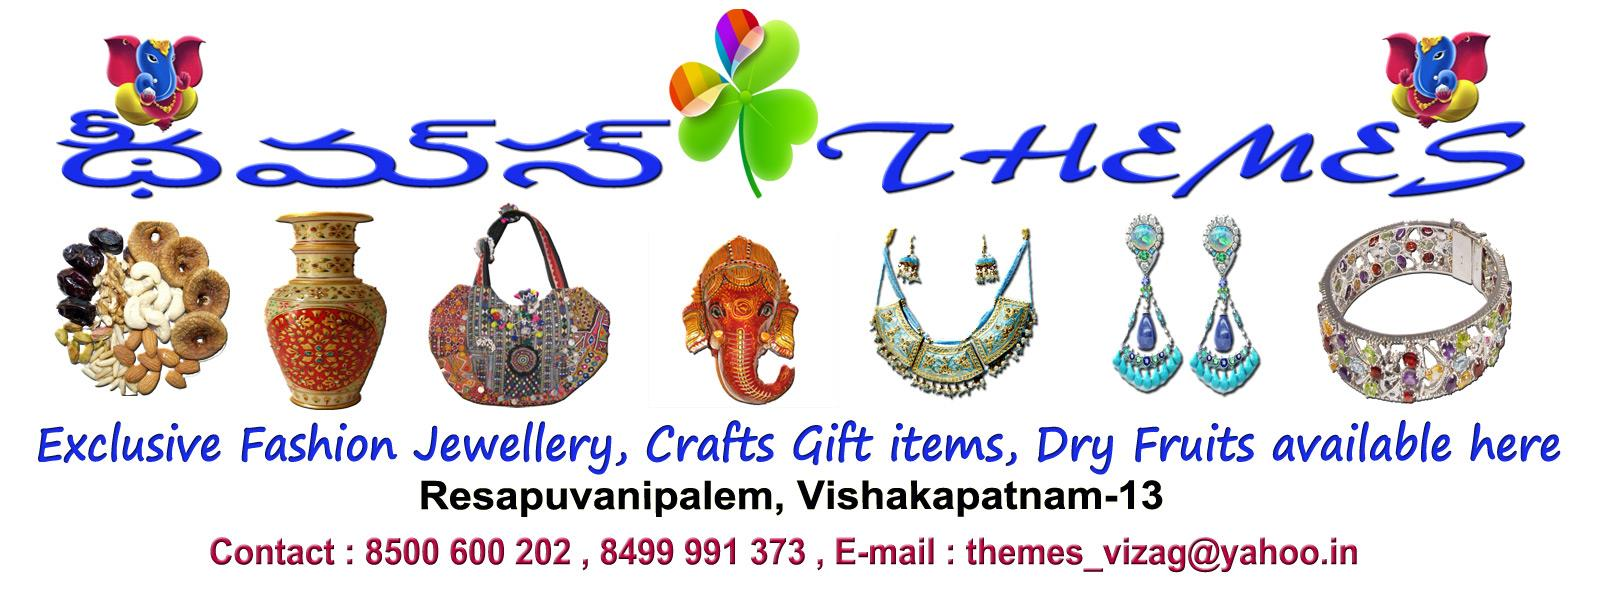 Themes Vizag ....................the one stop shop - by Themes Vizag, Vishakapatnam